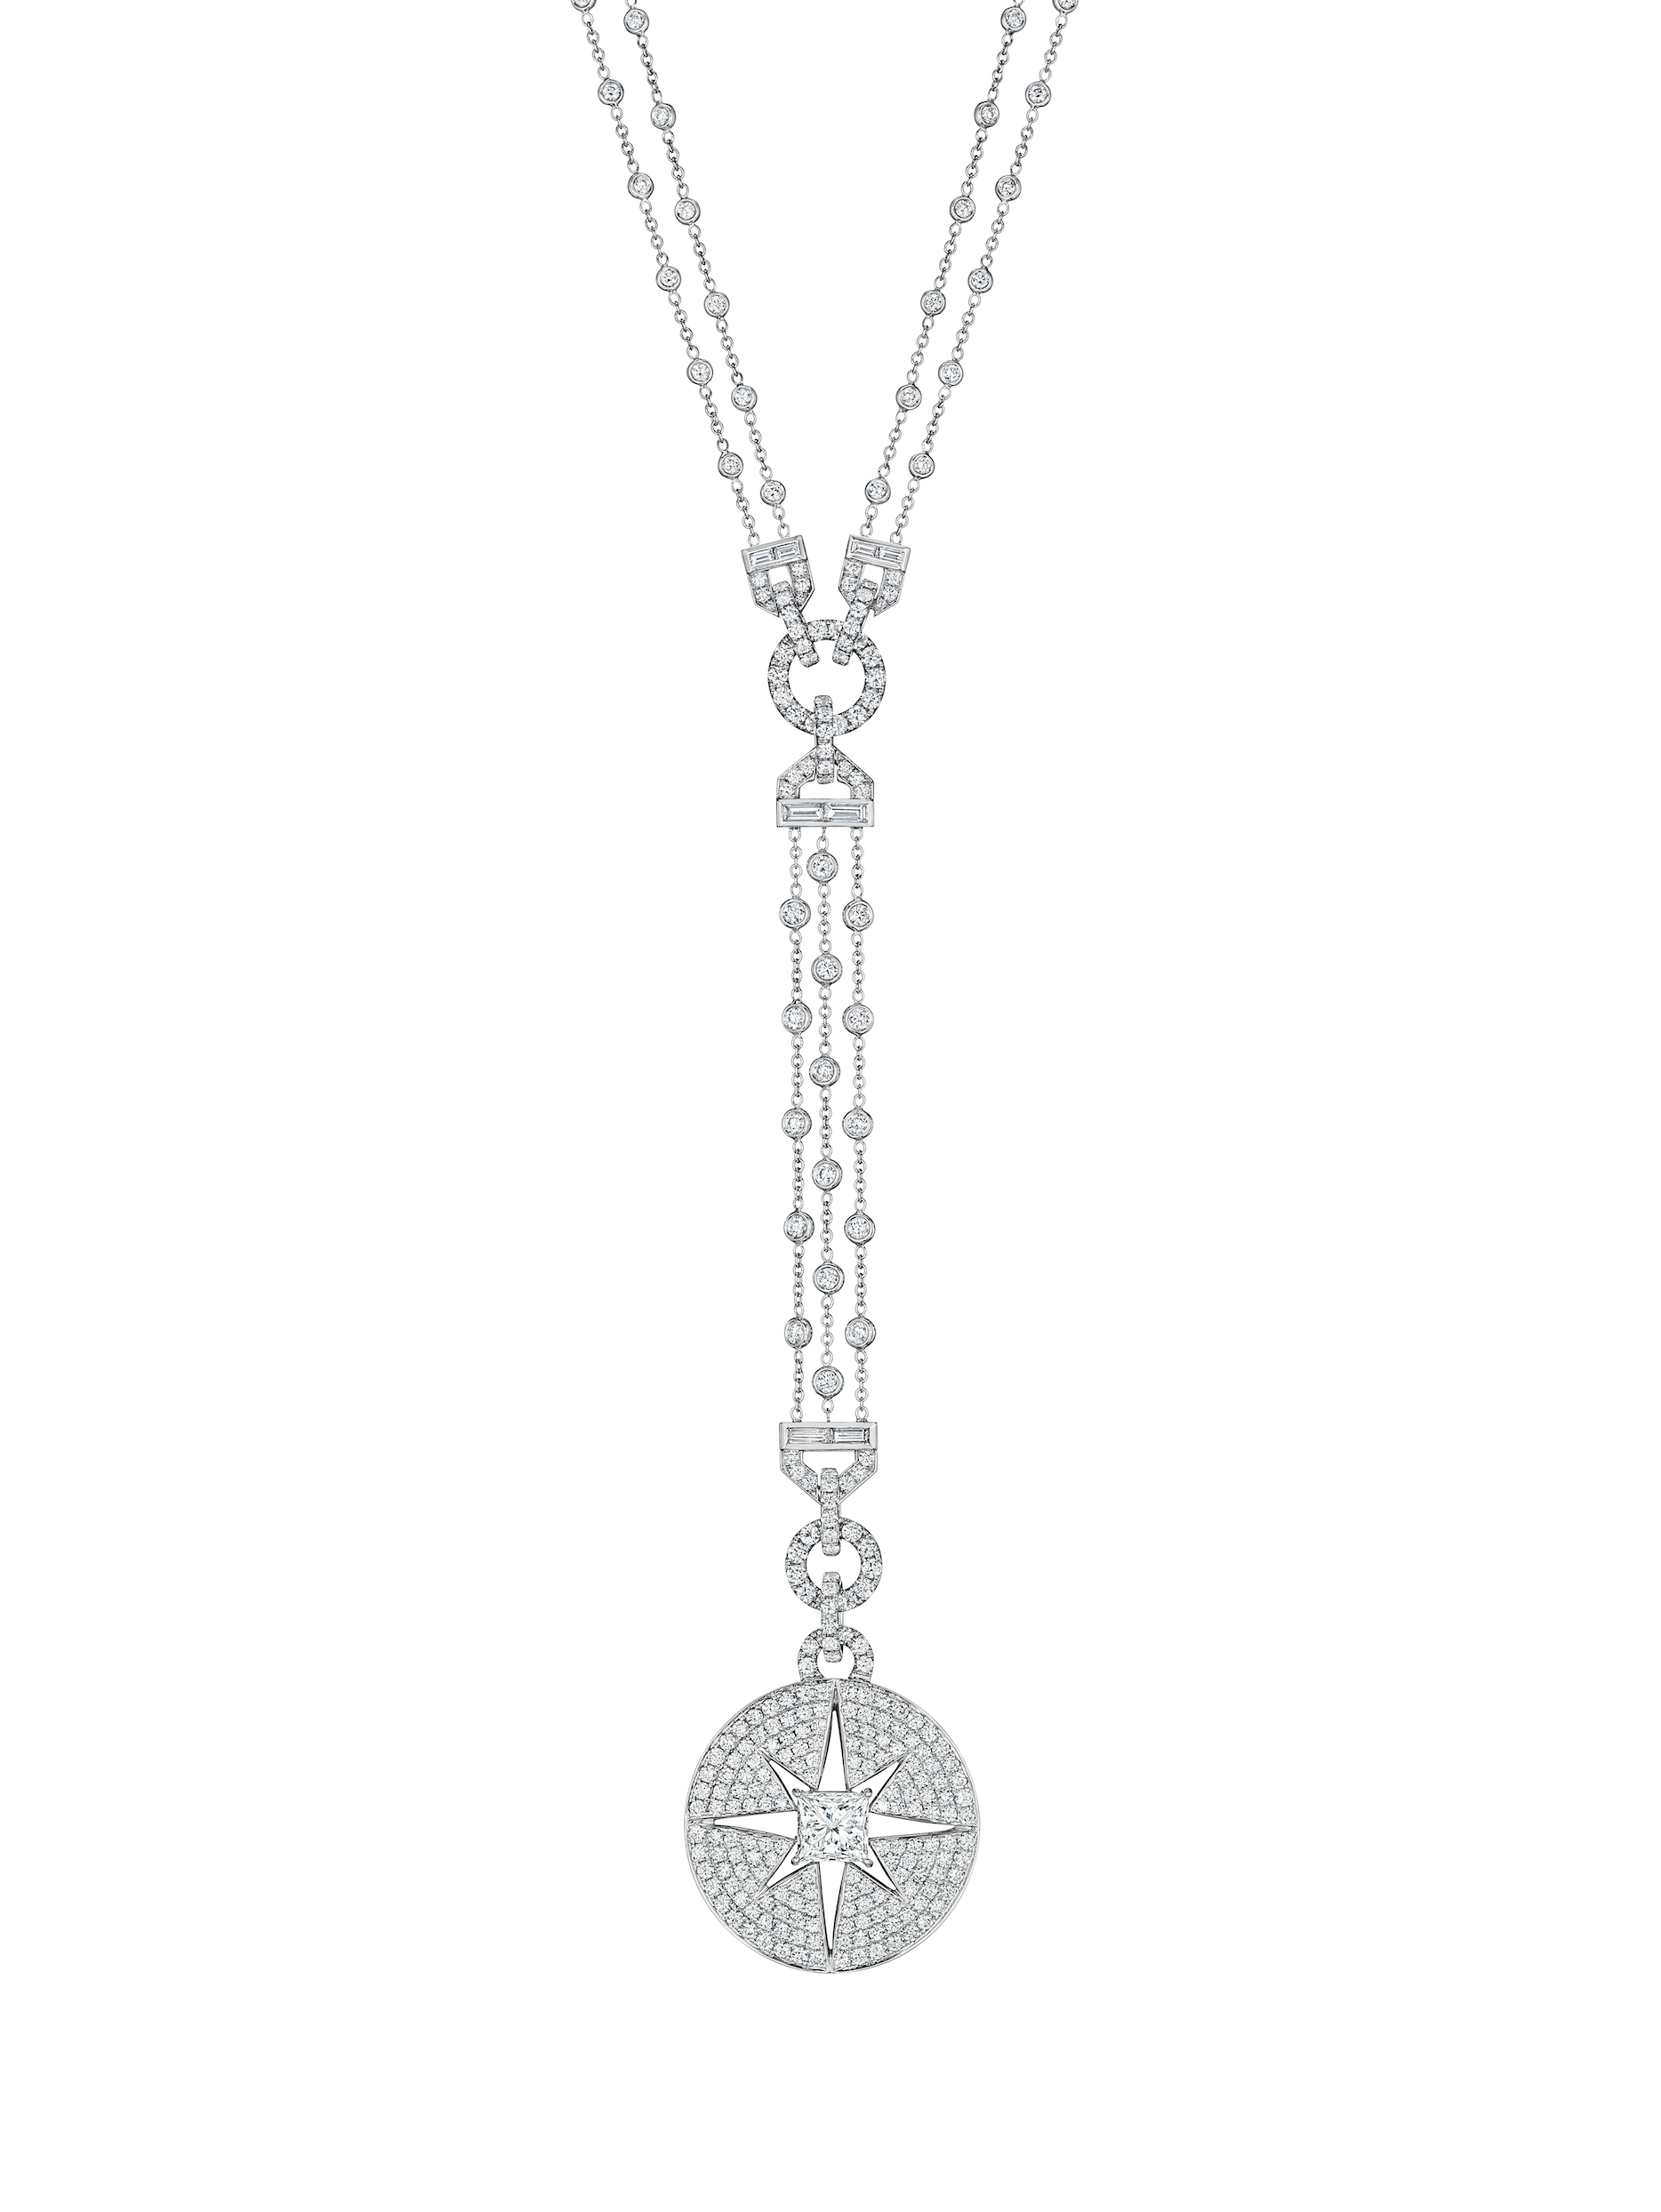 Starburst Statement Diamond Drop Necklace